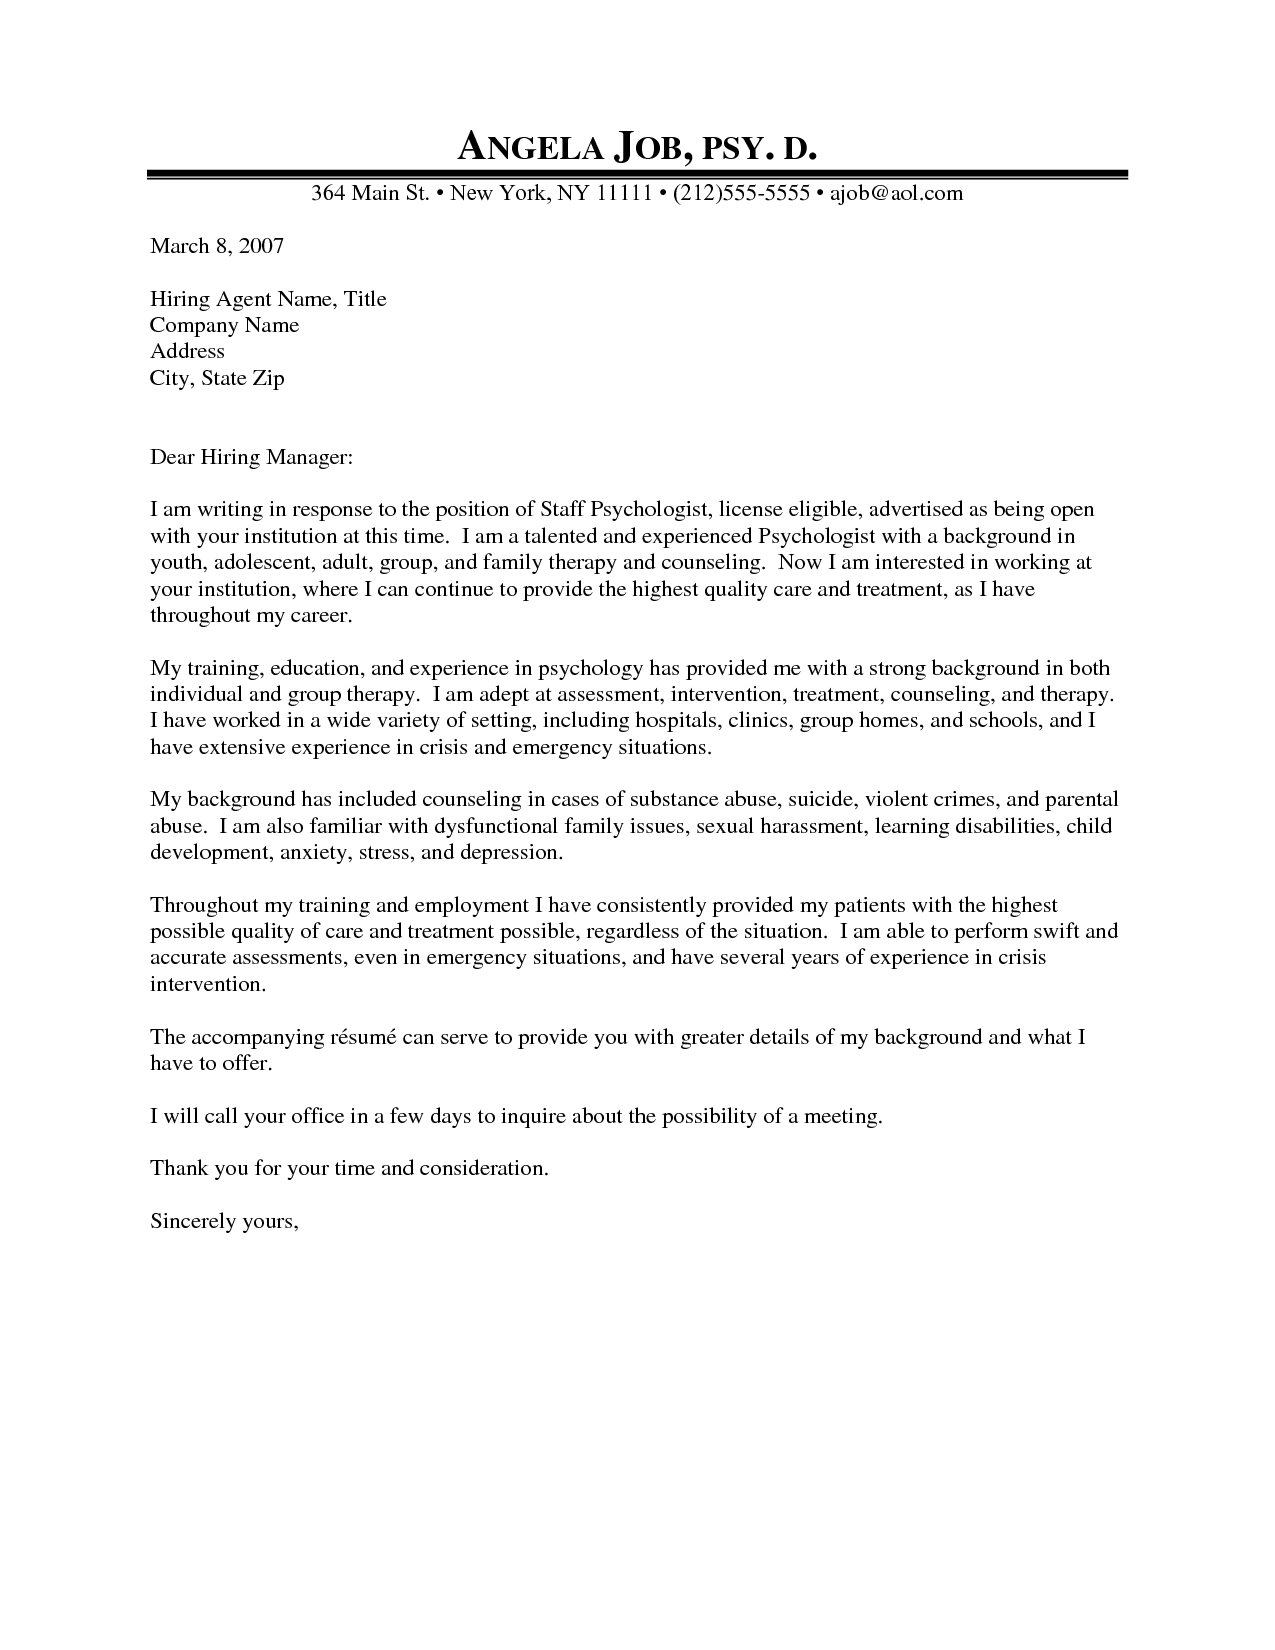 professional counseling cover letter psychologist cover letter example - Counseling Cover Letter